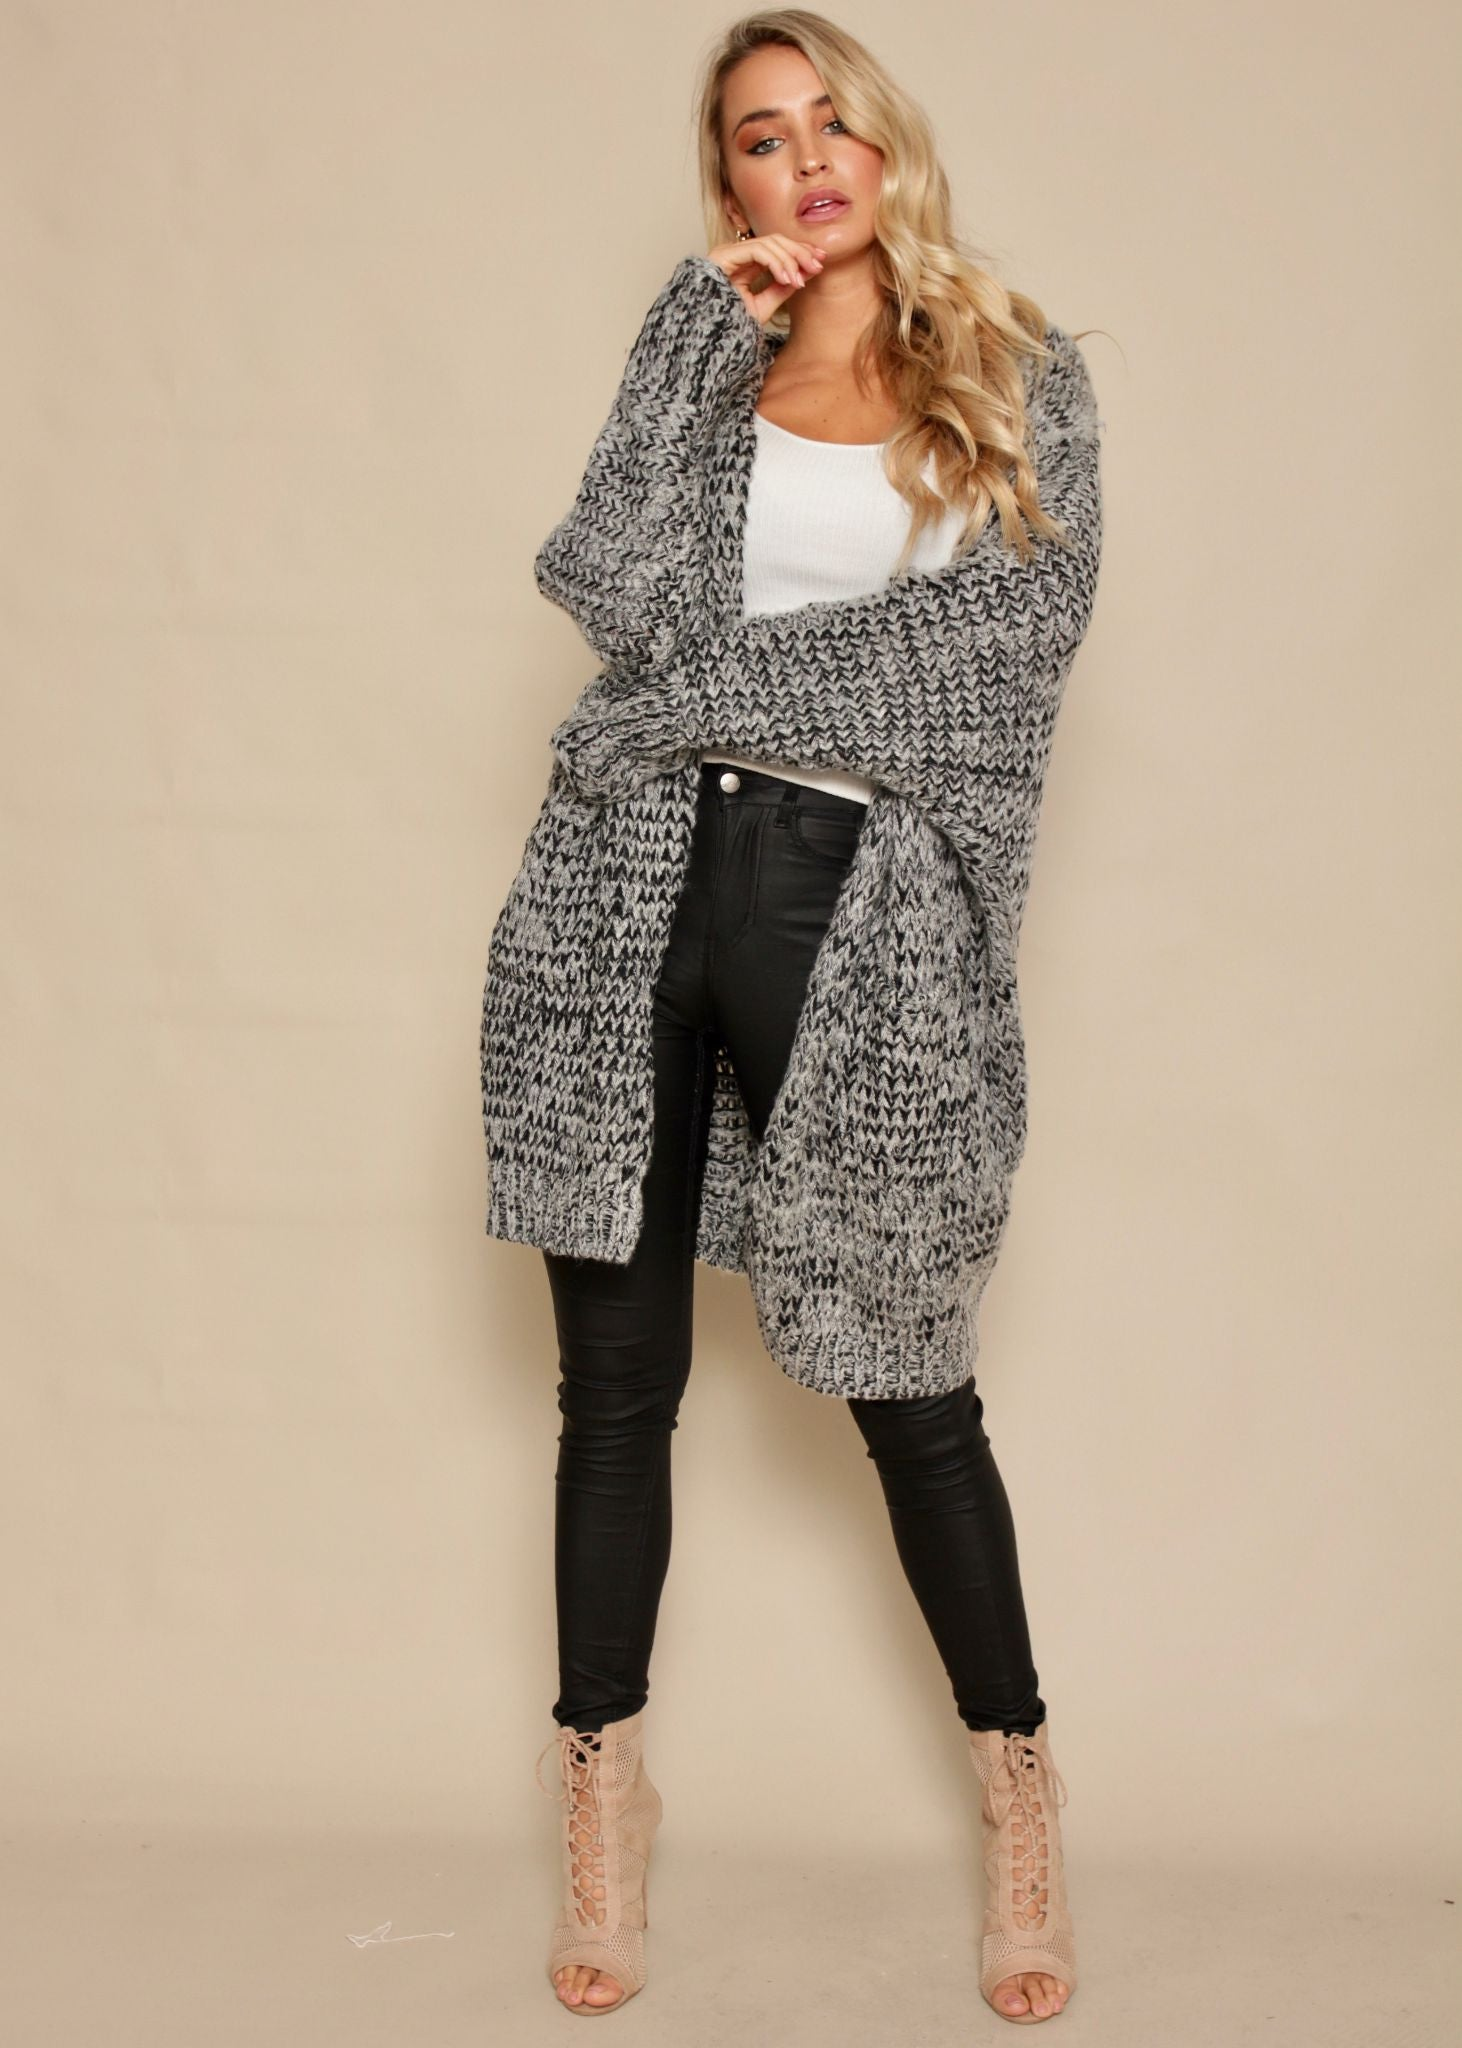 Shallow Waters Knit Cardigan - Charcoal